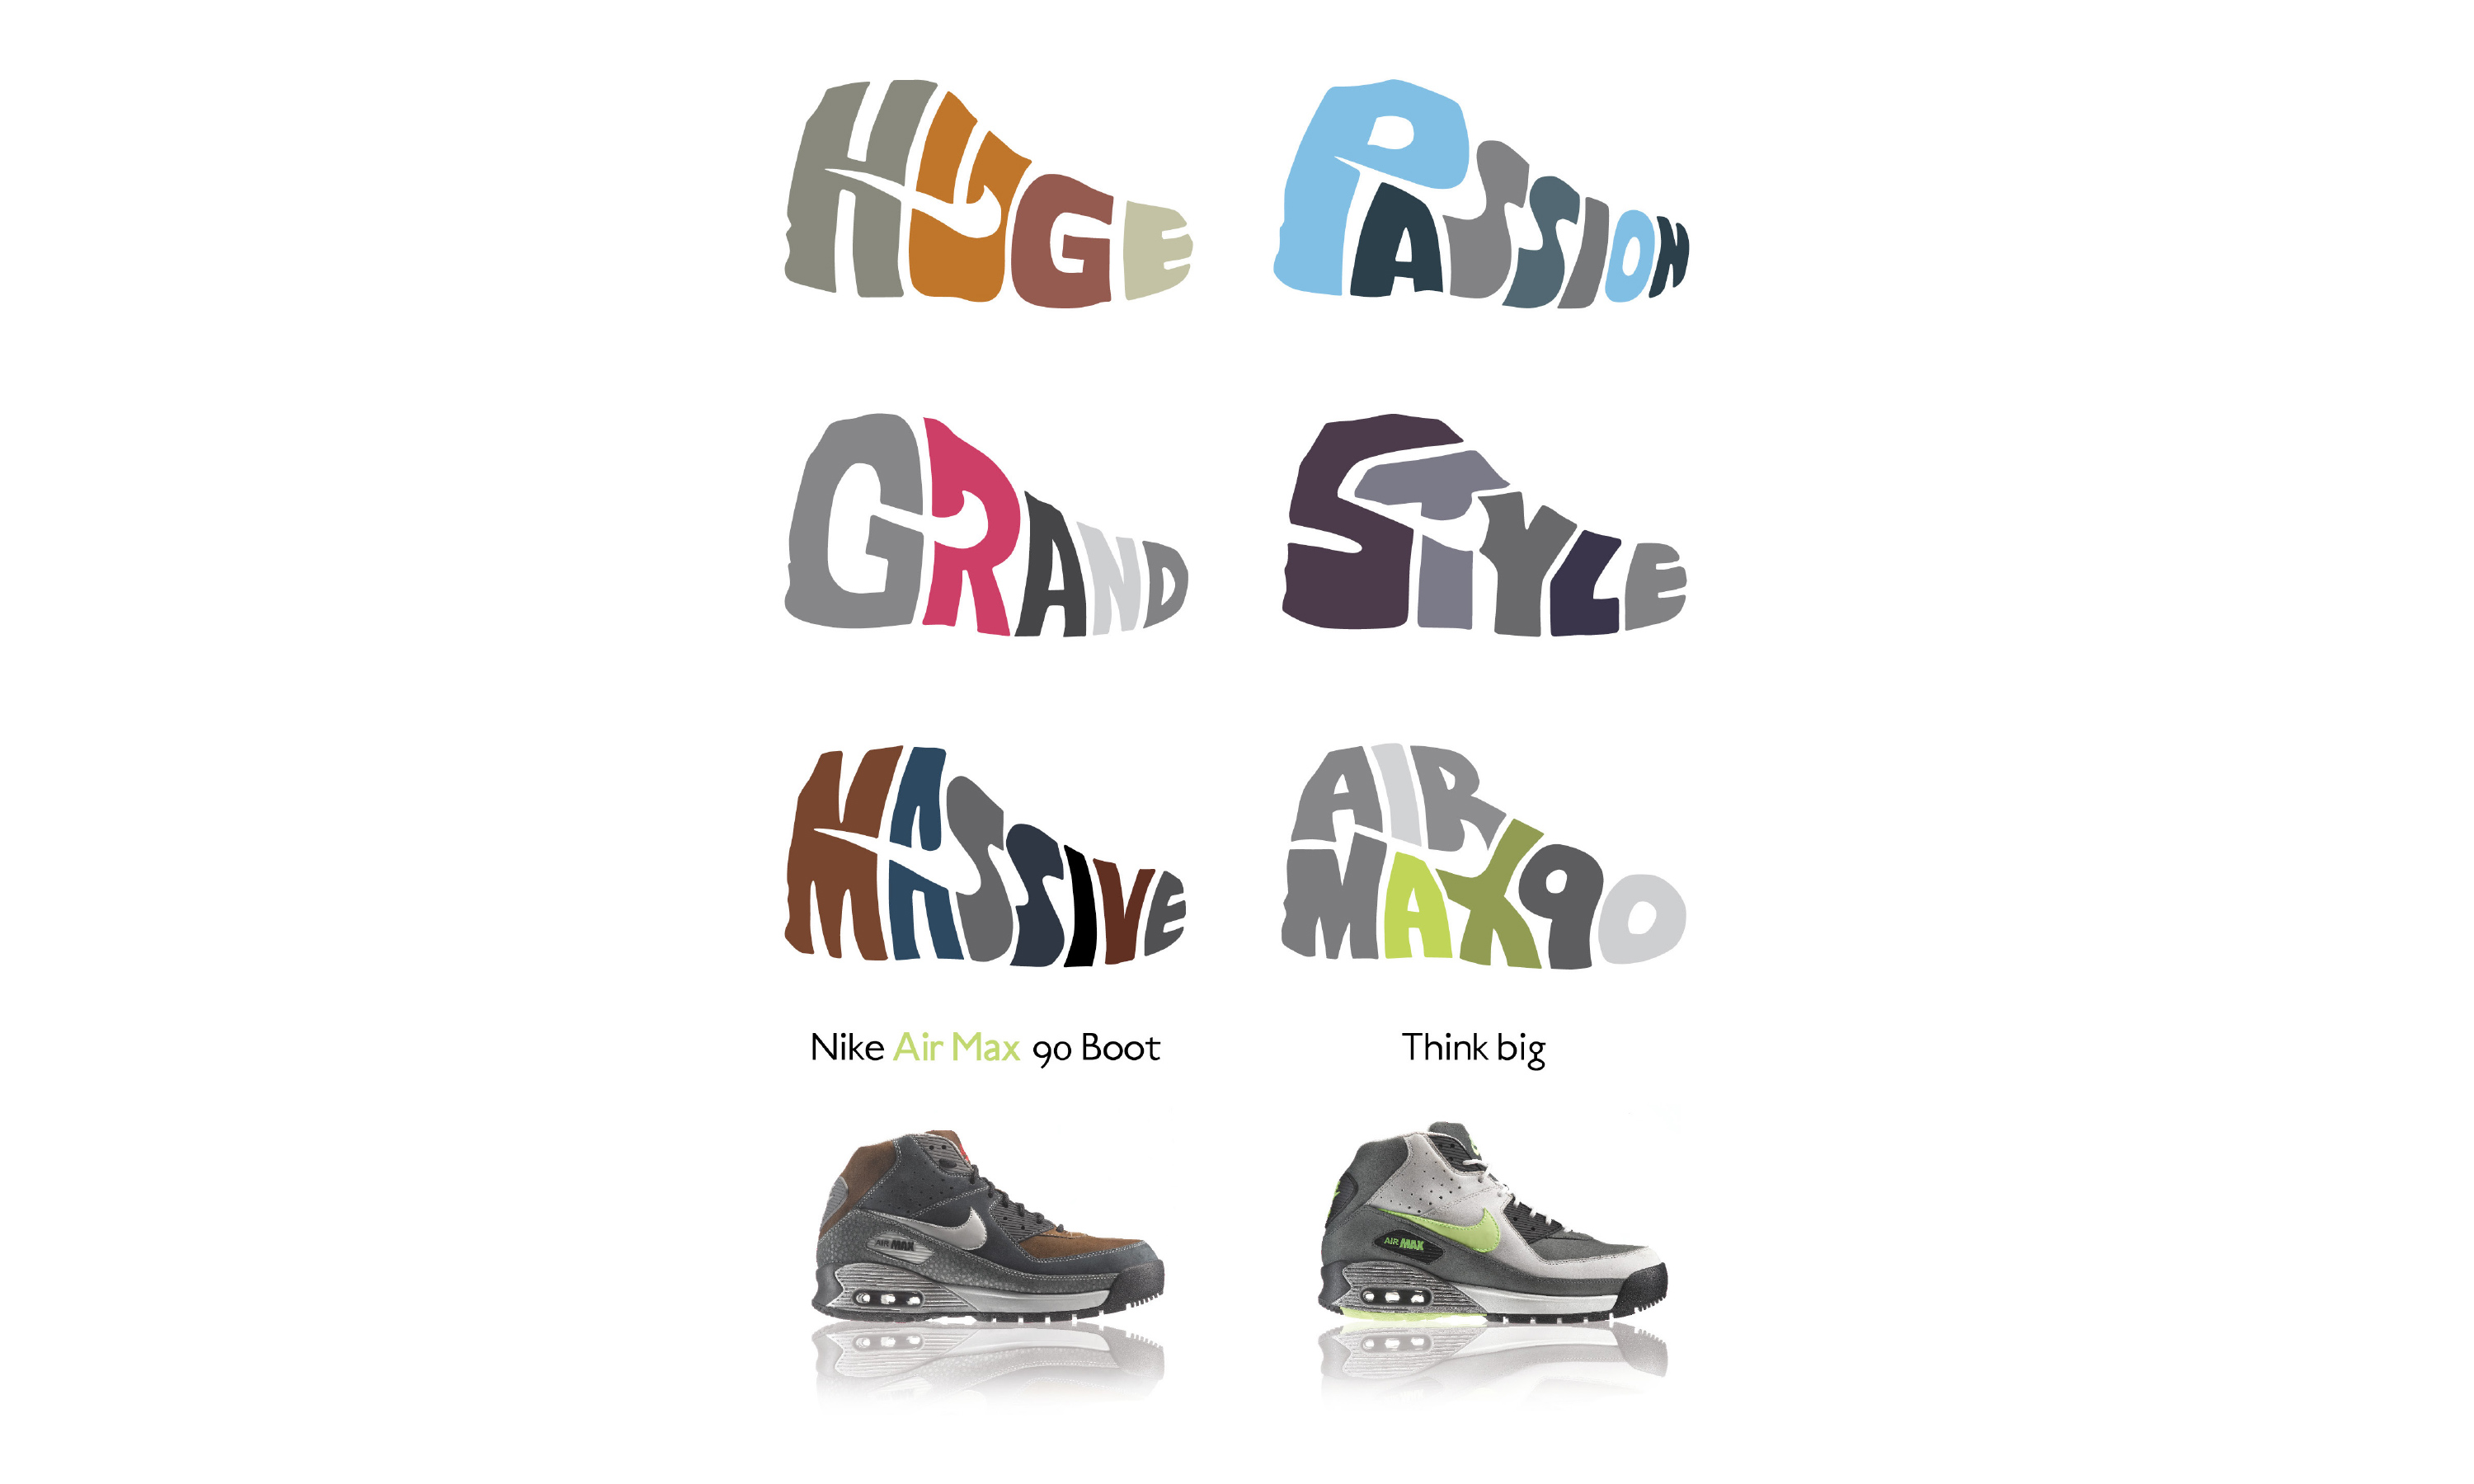 Nike Air Max Boot 90 | Grand style